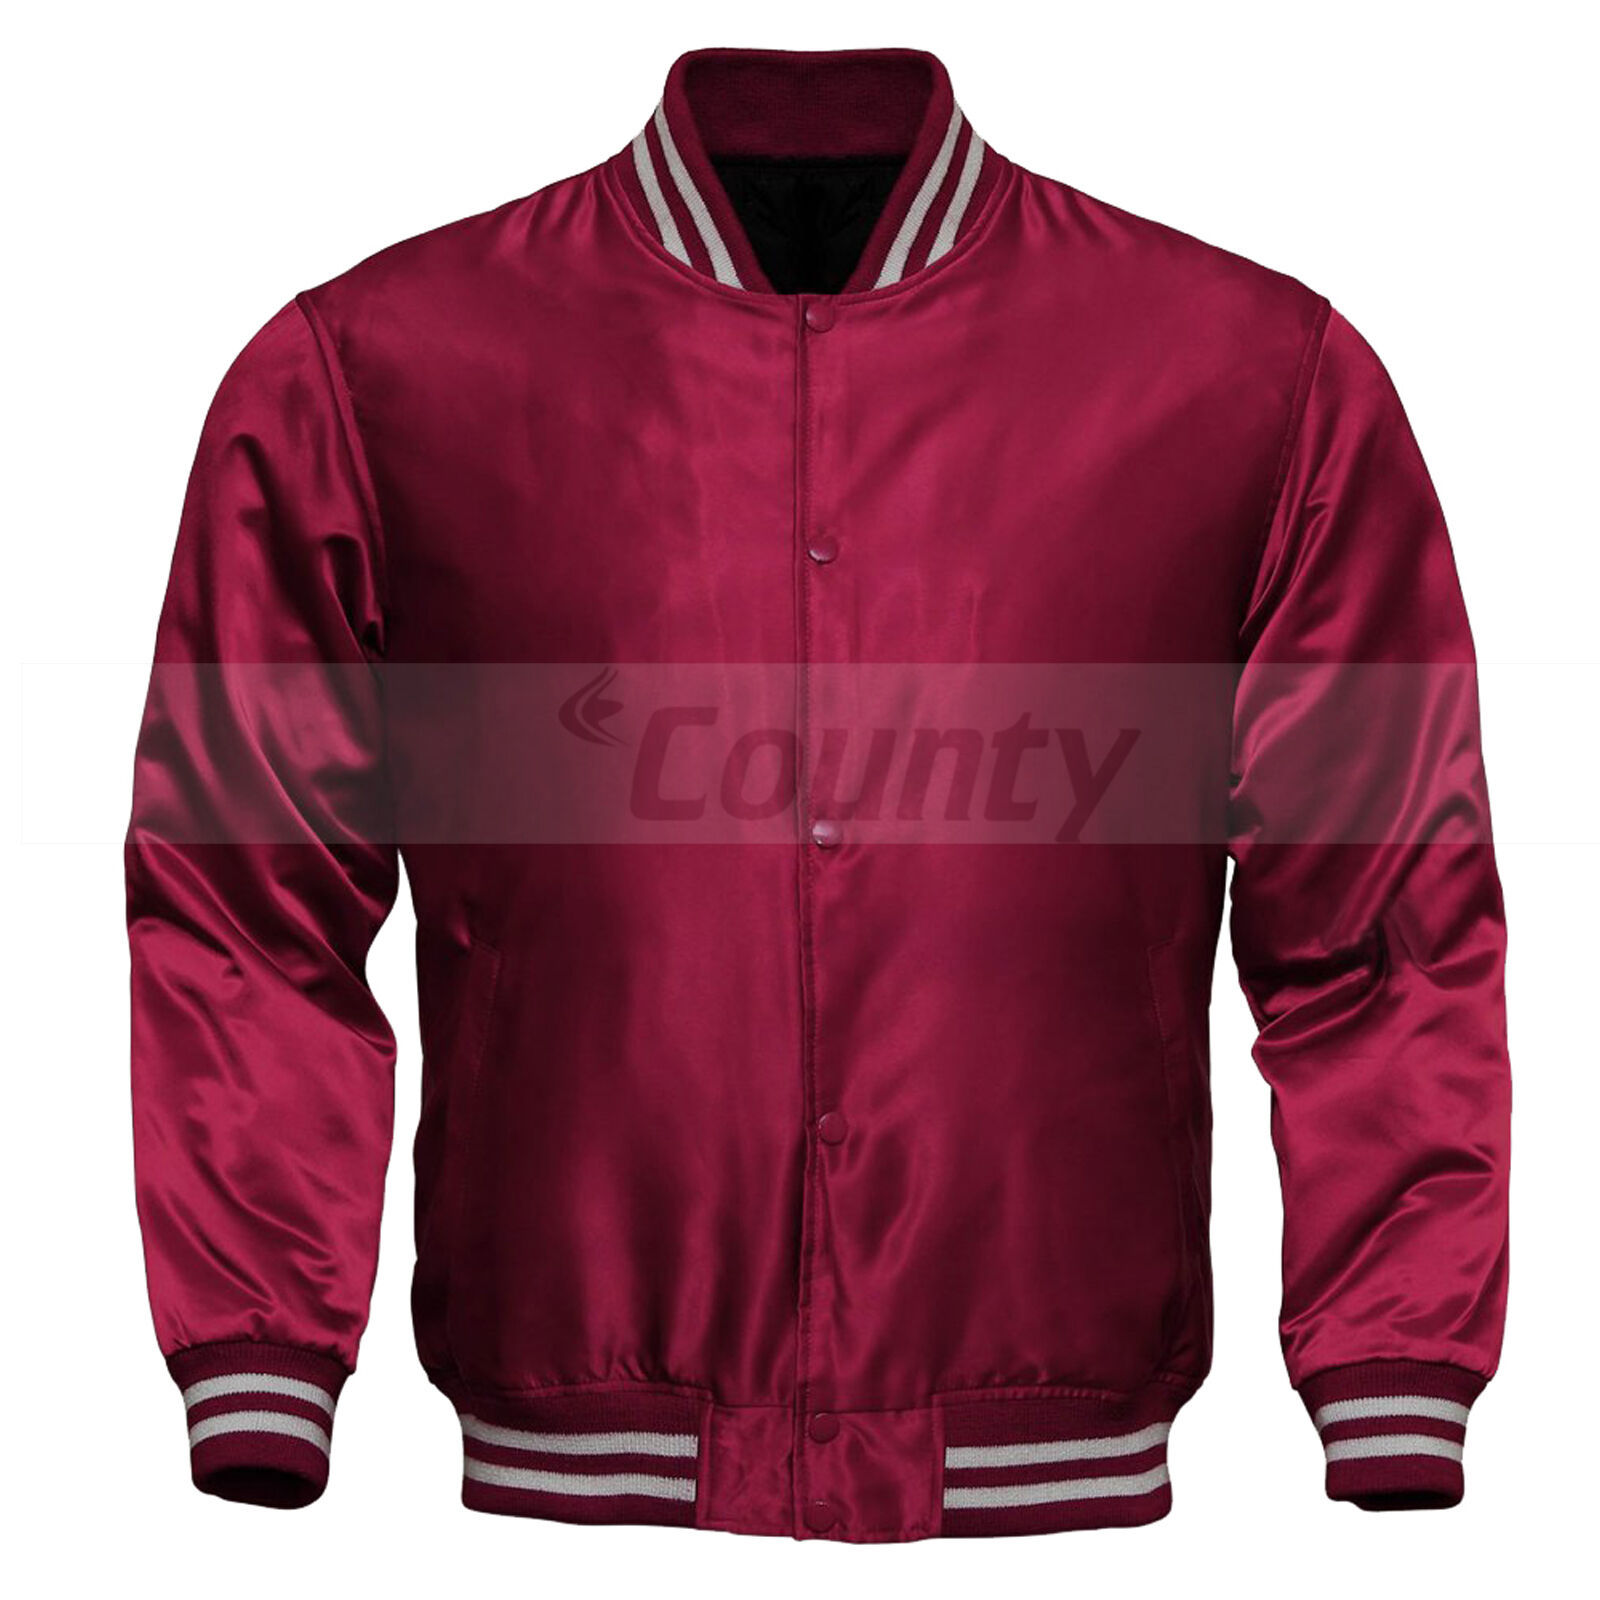 Primary image for Letterman Baseball College Varsity Quality Bomber Jacket SportsWear Maroon Satin